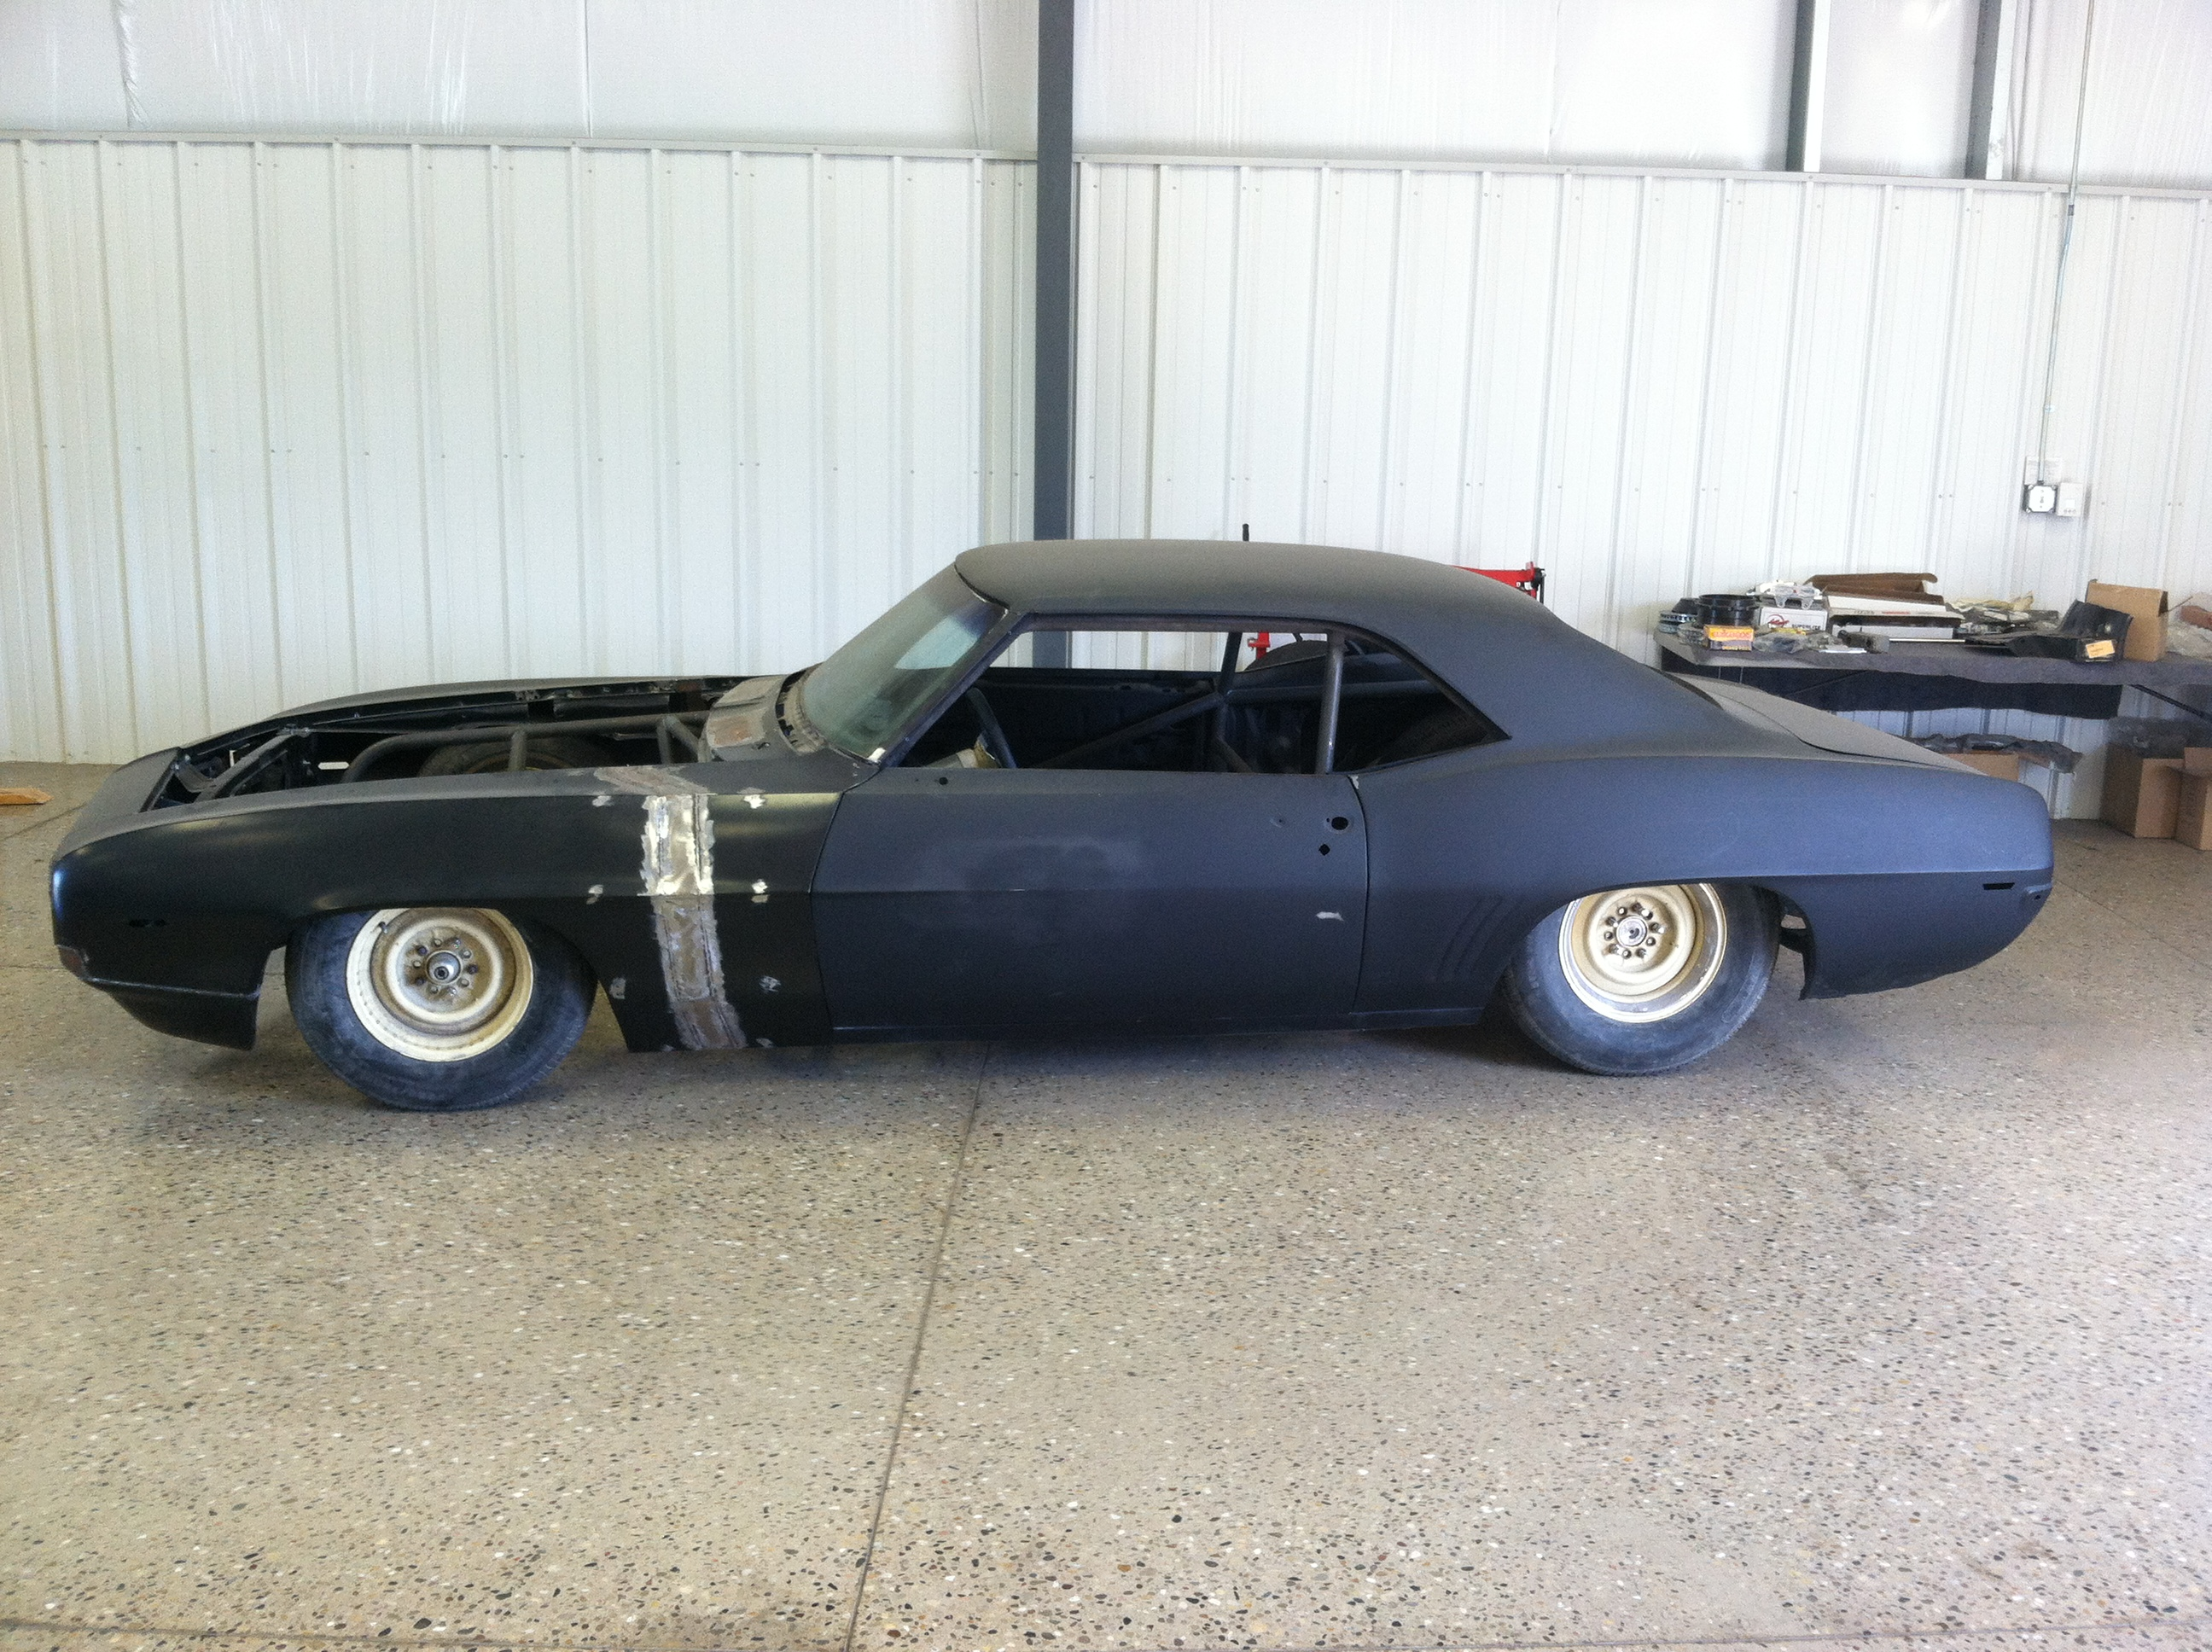 1969 Camaro roller - Call for price